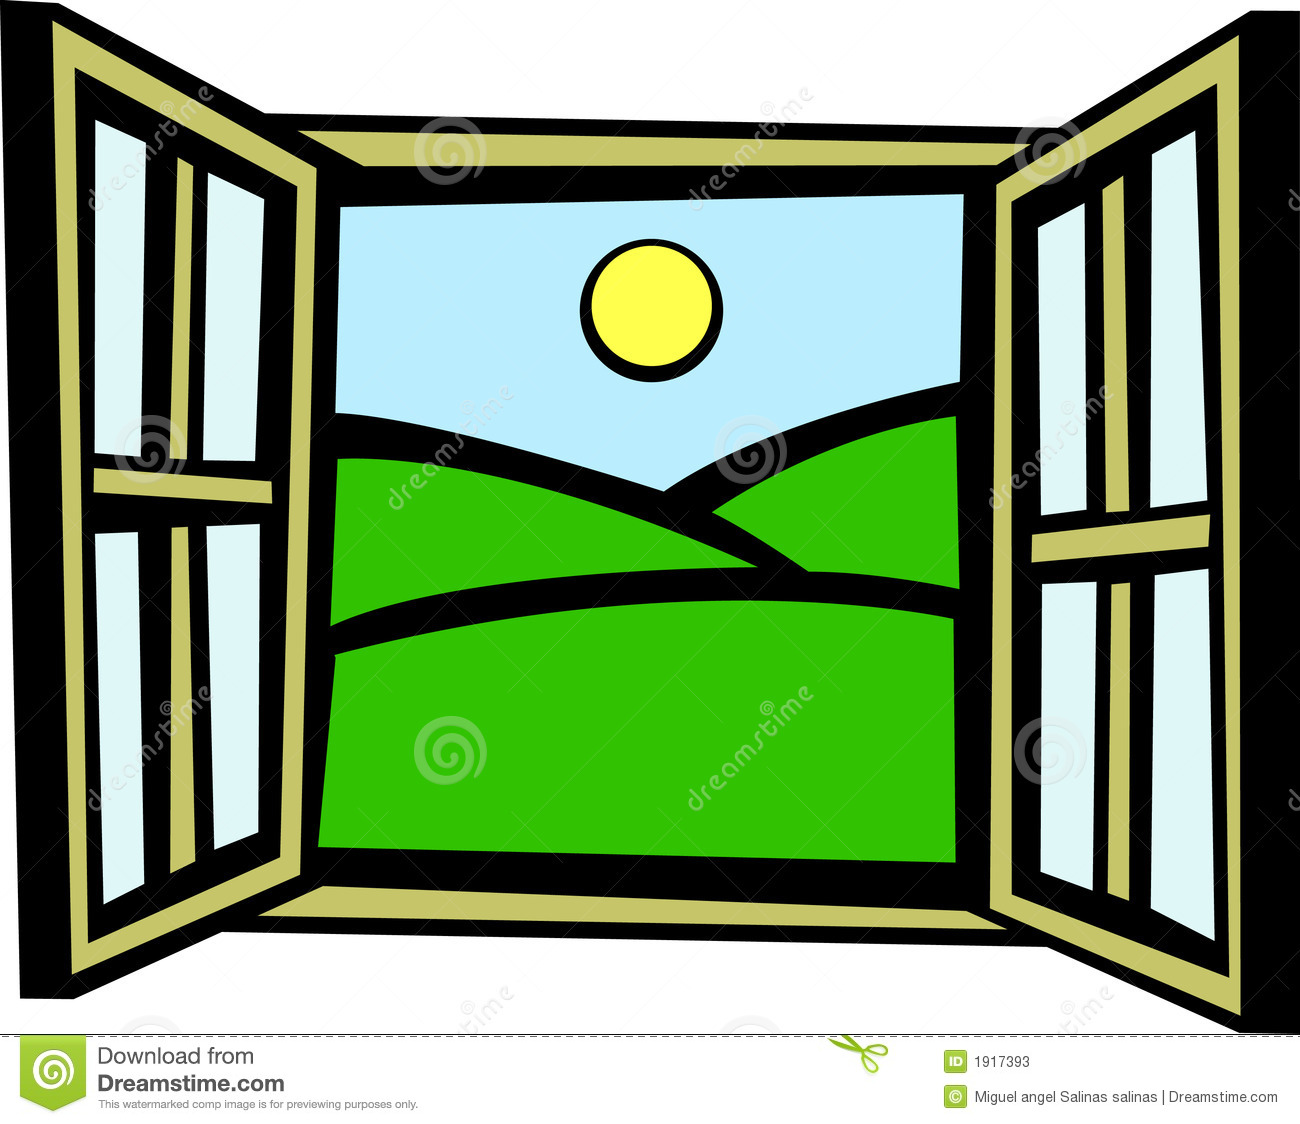 window clipart clipart info window w activavida co rh activavida co window clipart images window clipart in black and white